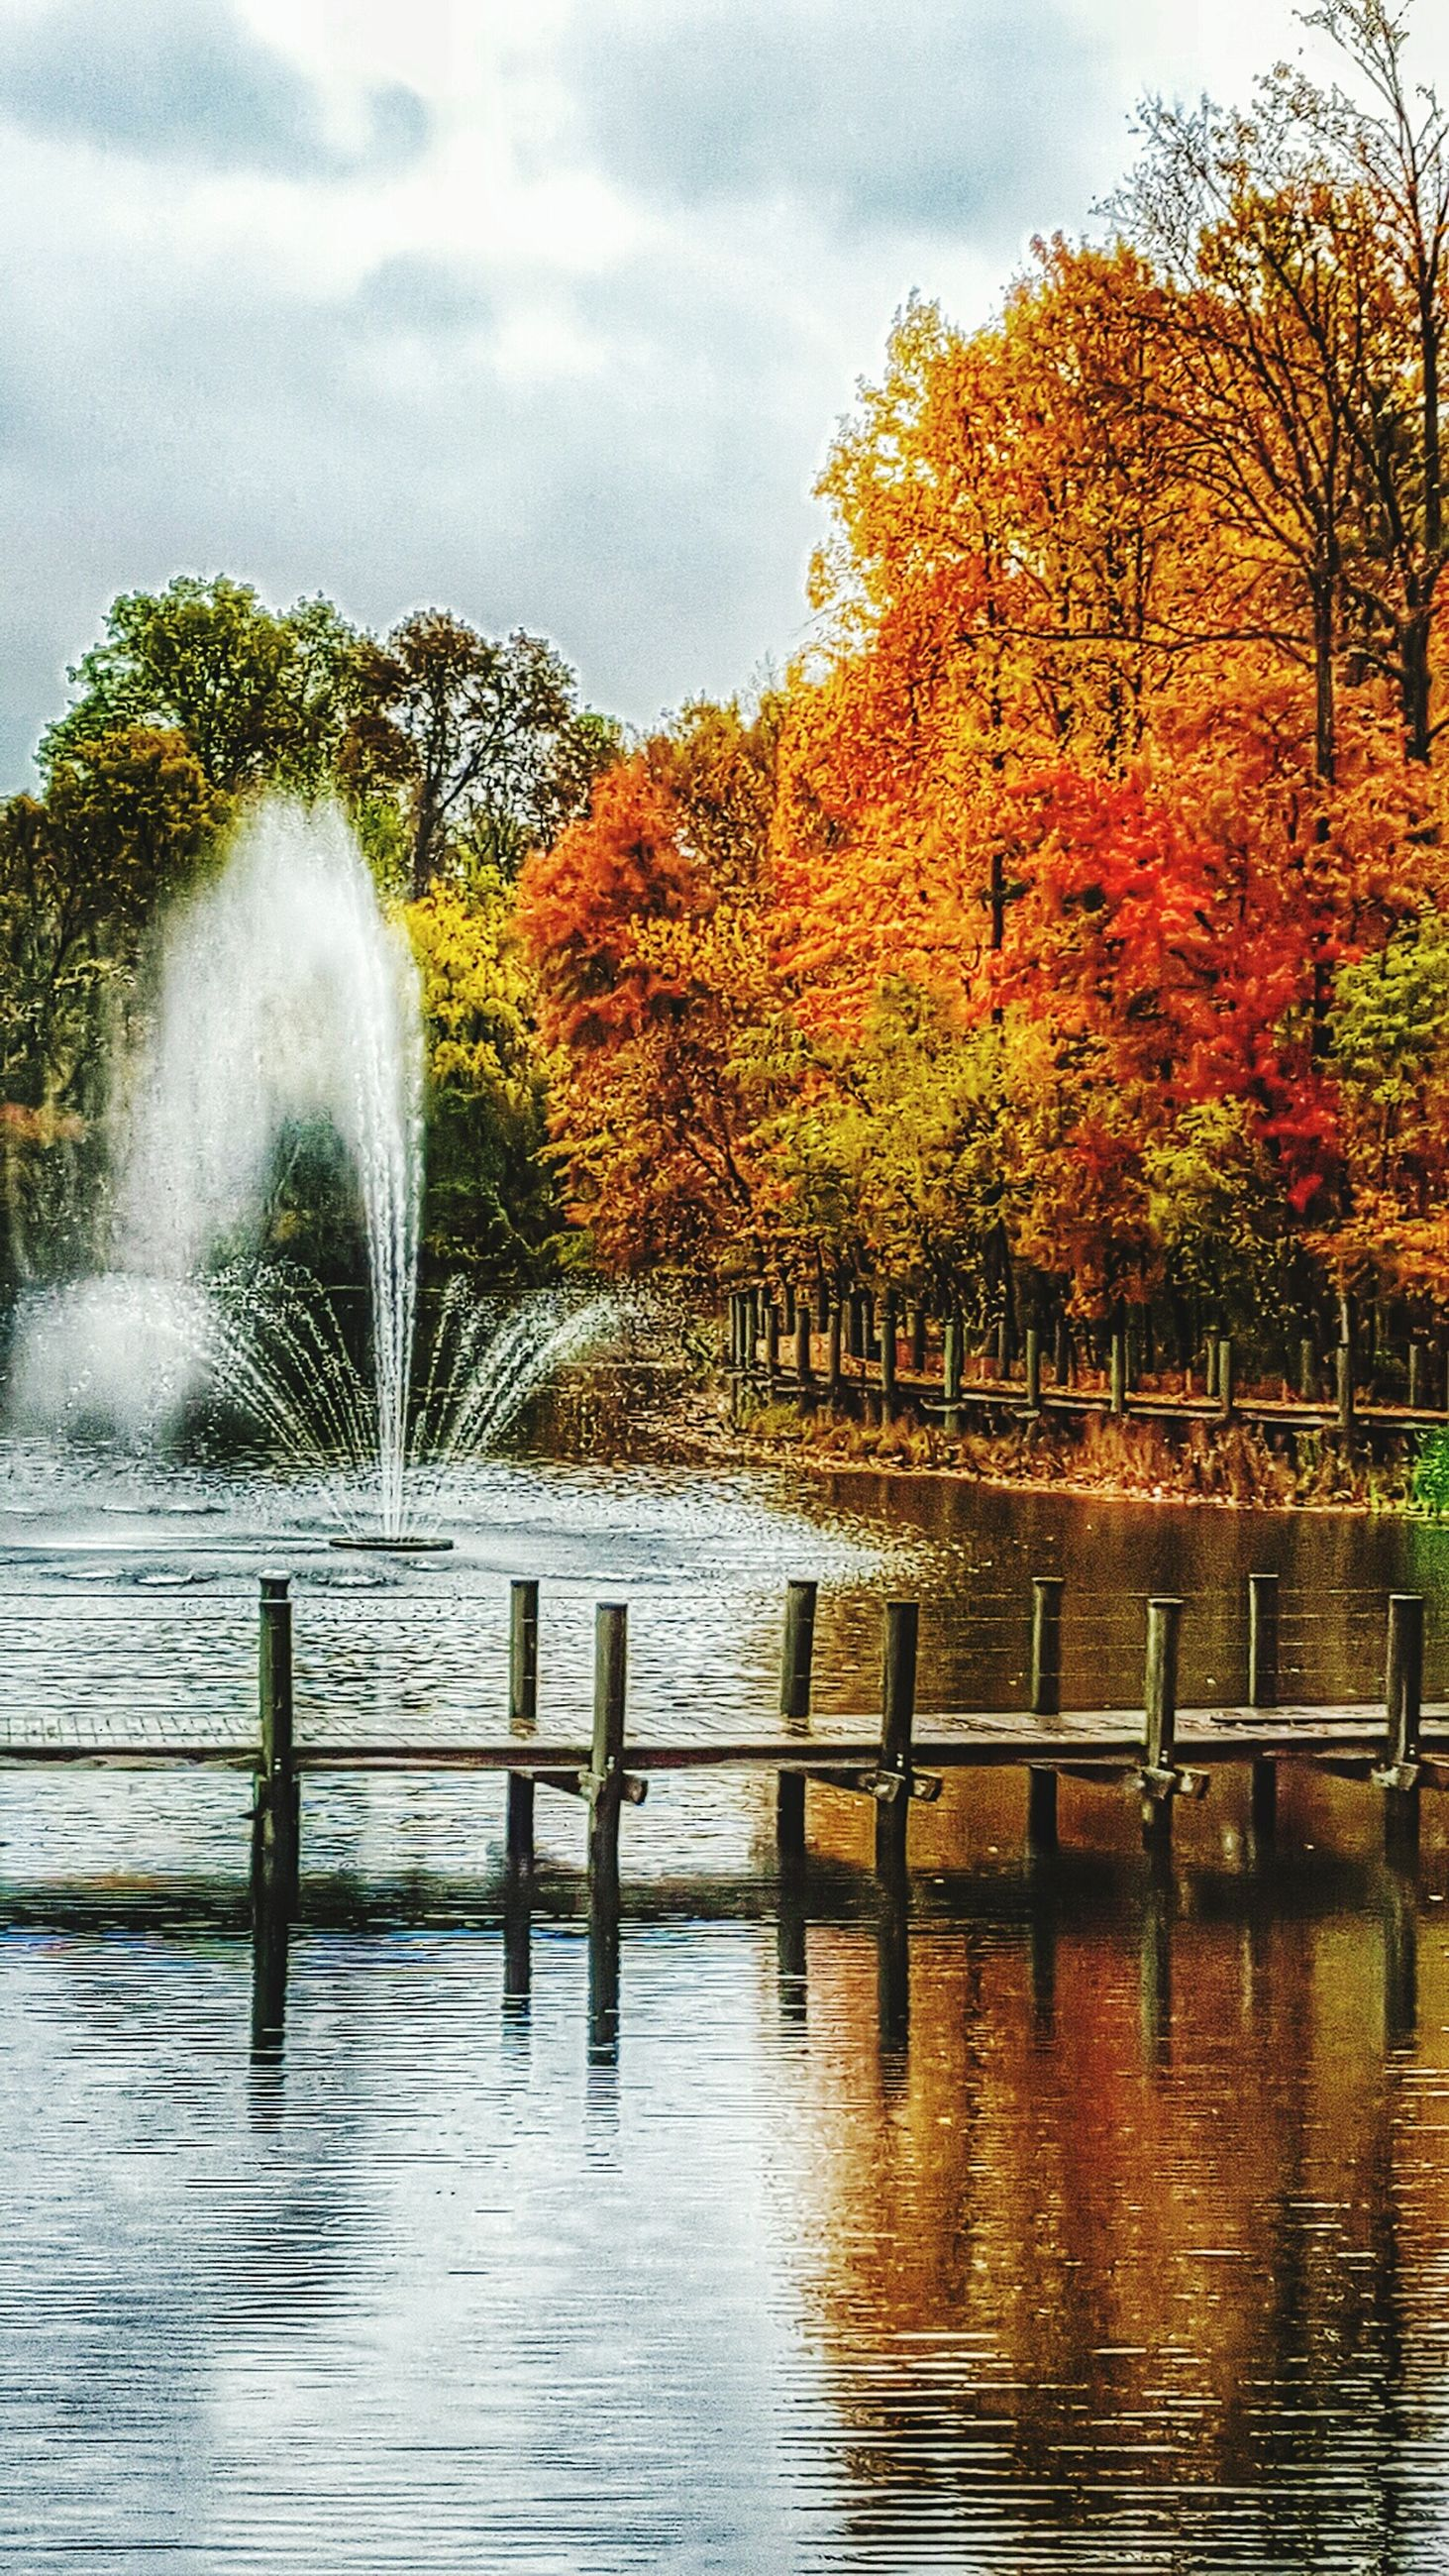 tree, water, tranquility, tranquil scene, beauty in nature, nature, scenics, lake, waterfront, reflection, autumn, change, season, sky, park - man made space, growth, idyllic, gazebo, outdoors, day